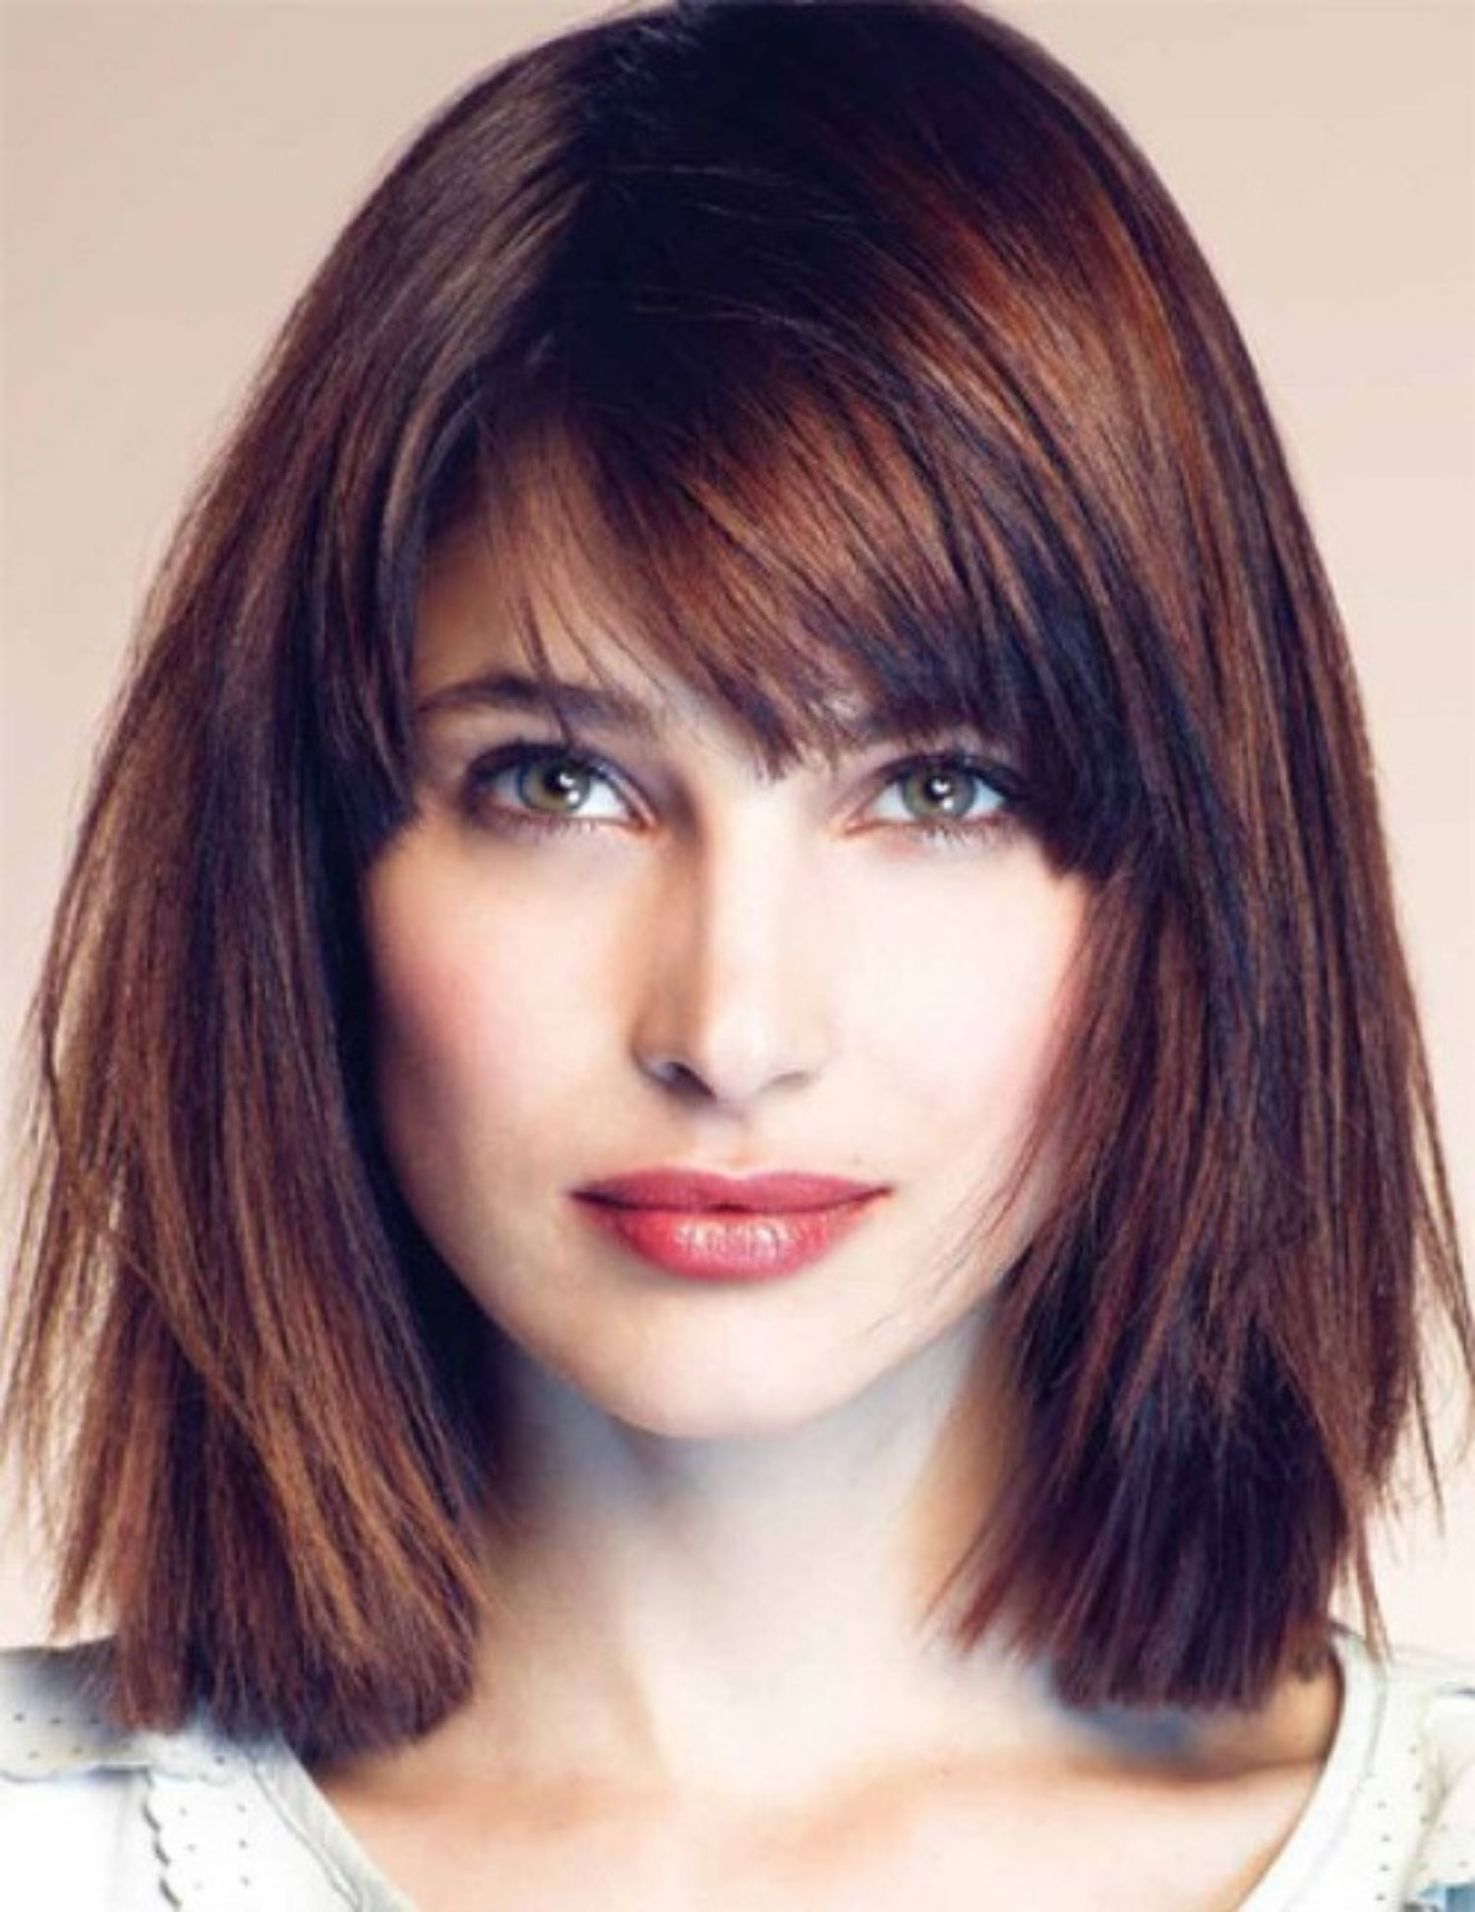 50 Best Hairstyles For Square Faces Rounding The Angles Square Face Hairstyles Haircut For Square Face Haircut For Big Forehead